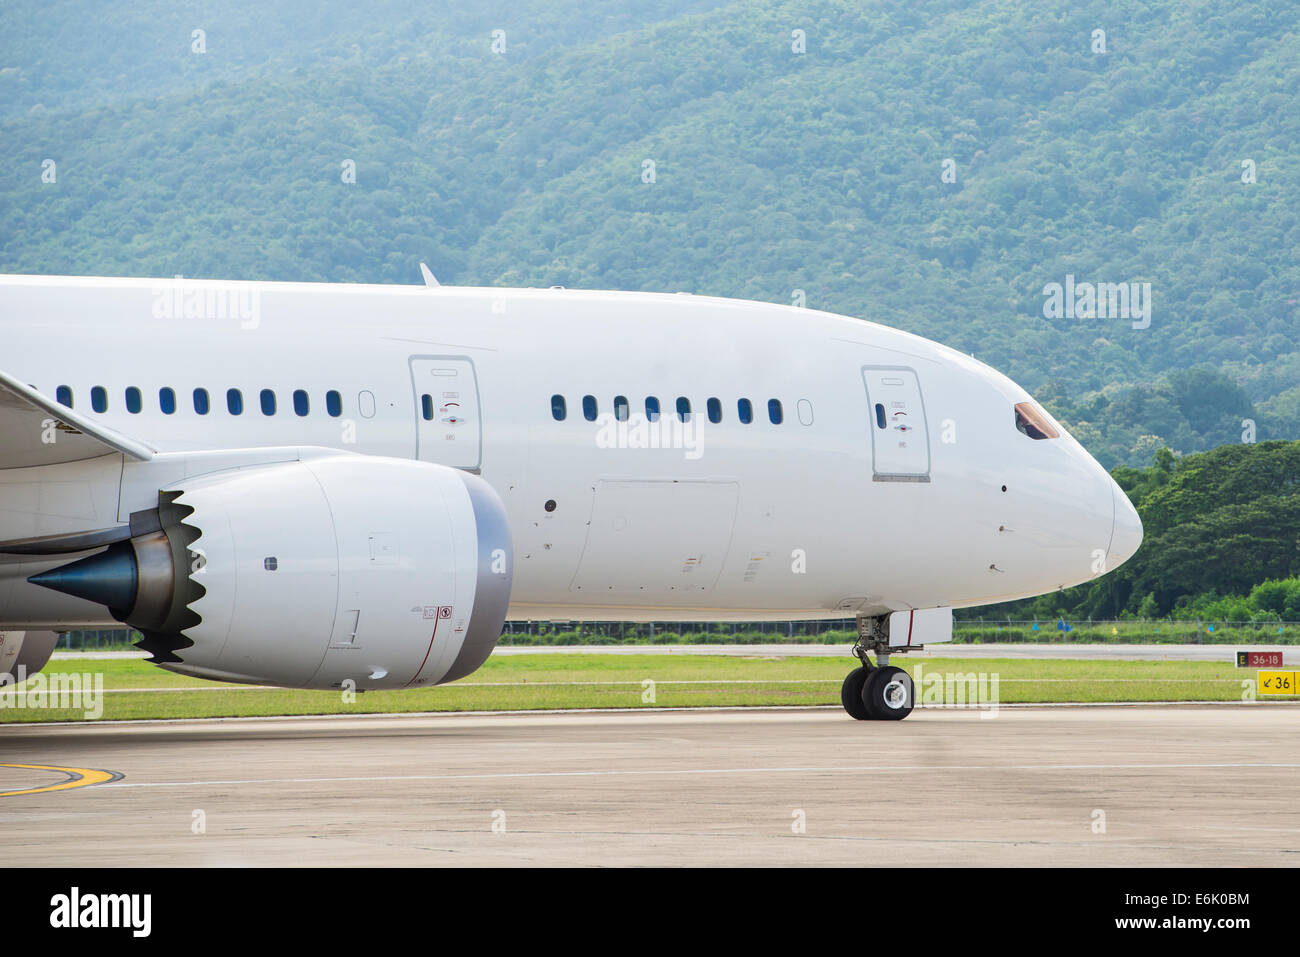 Commercial airplane taxiing to runway - Stock Image